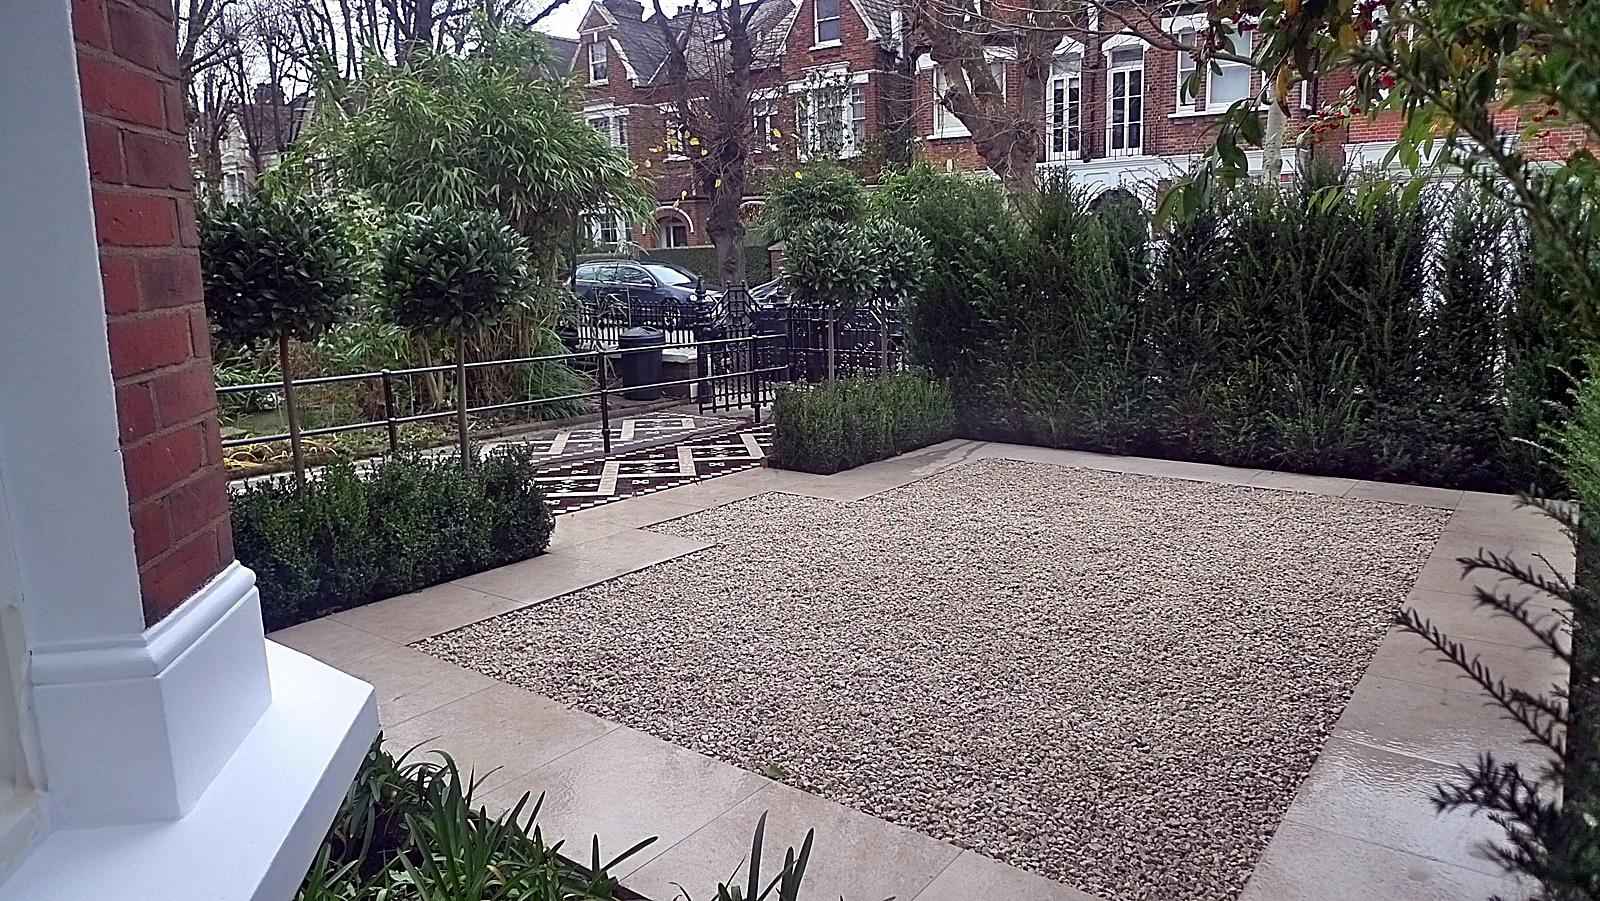 London garden design garden design for Front garden design ideas